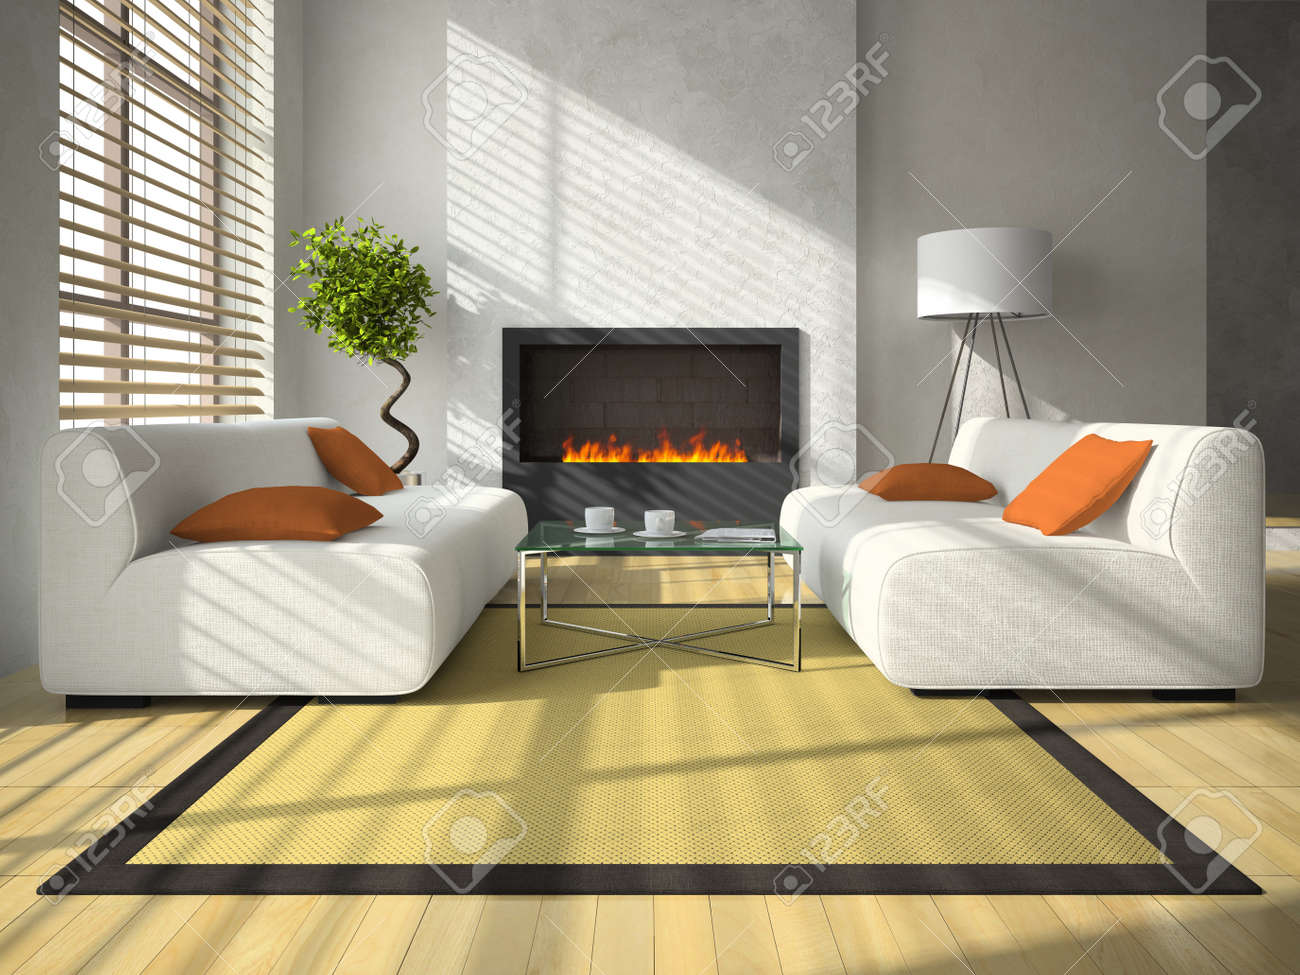 Modern Living Room With Fireplace Interior Of The Modern Living Room With Fireplace 3d Rendering